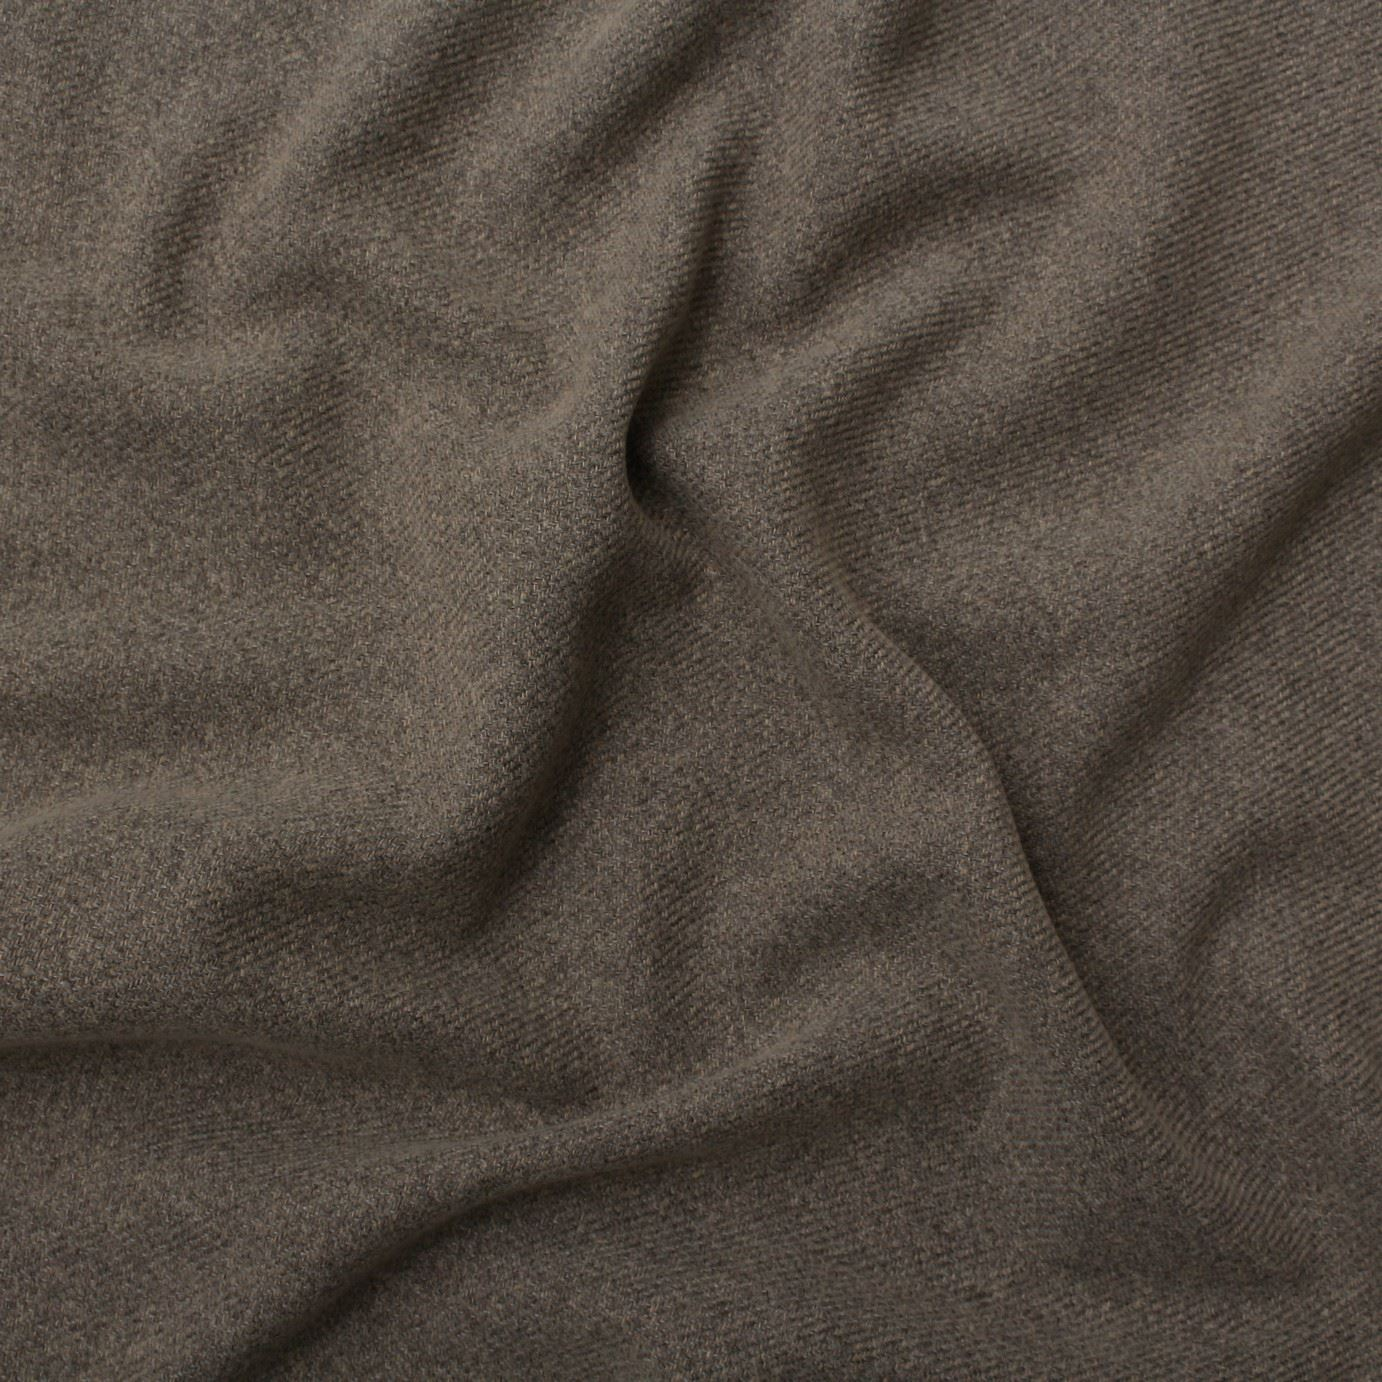 thumbnail 19 - TRADITIONAL TWILL WEAVE SOFT PLAIN FURNISHING COTTON FAUX WOOL UPHOLSTERY FABRIC